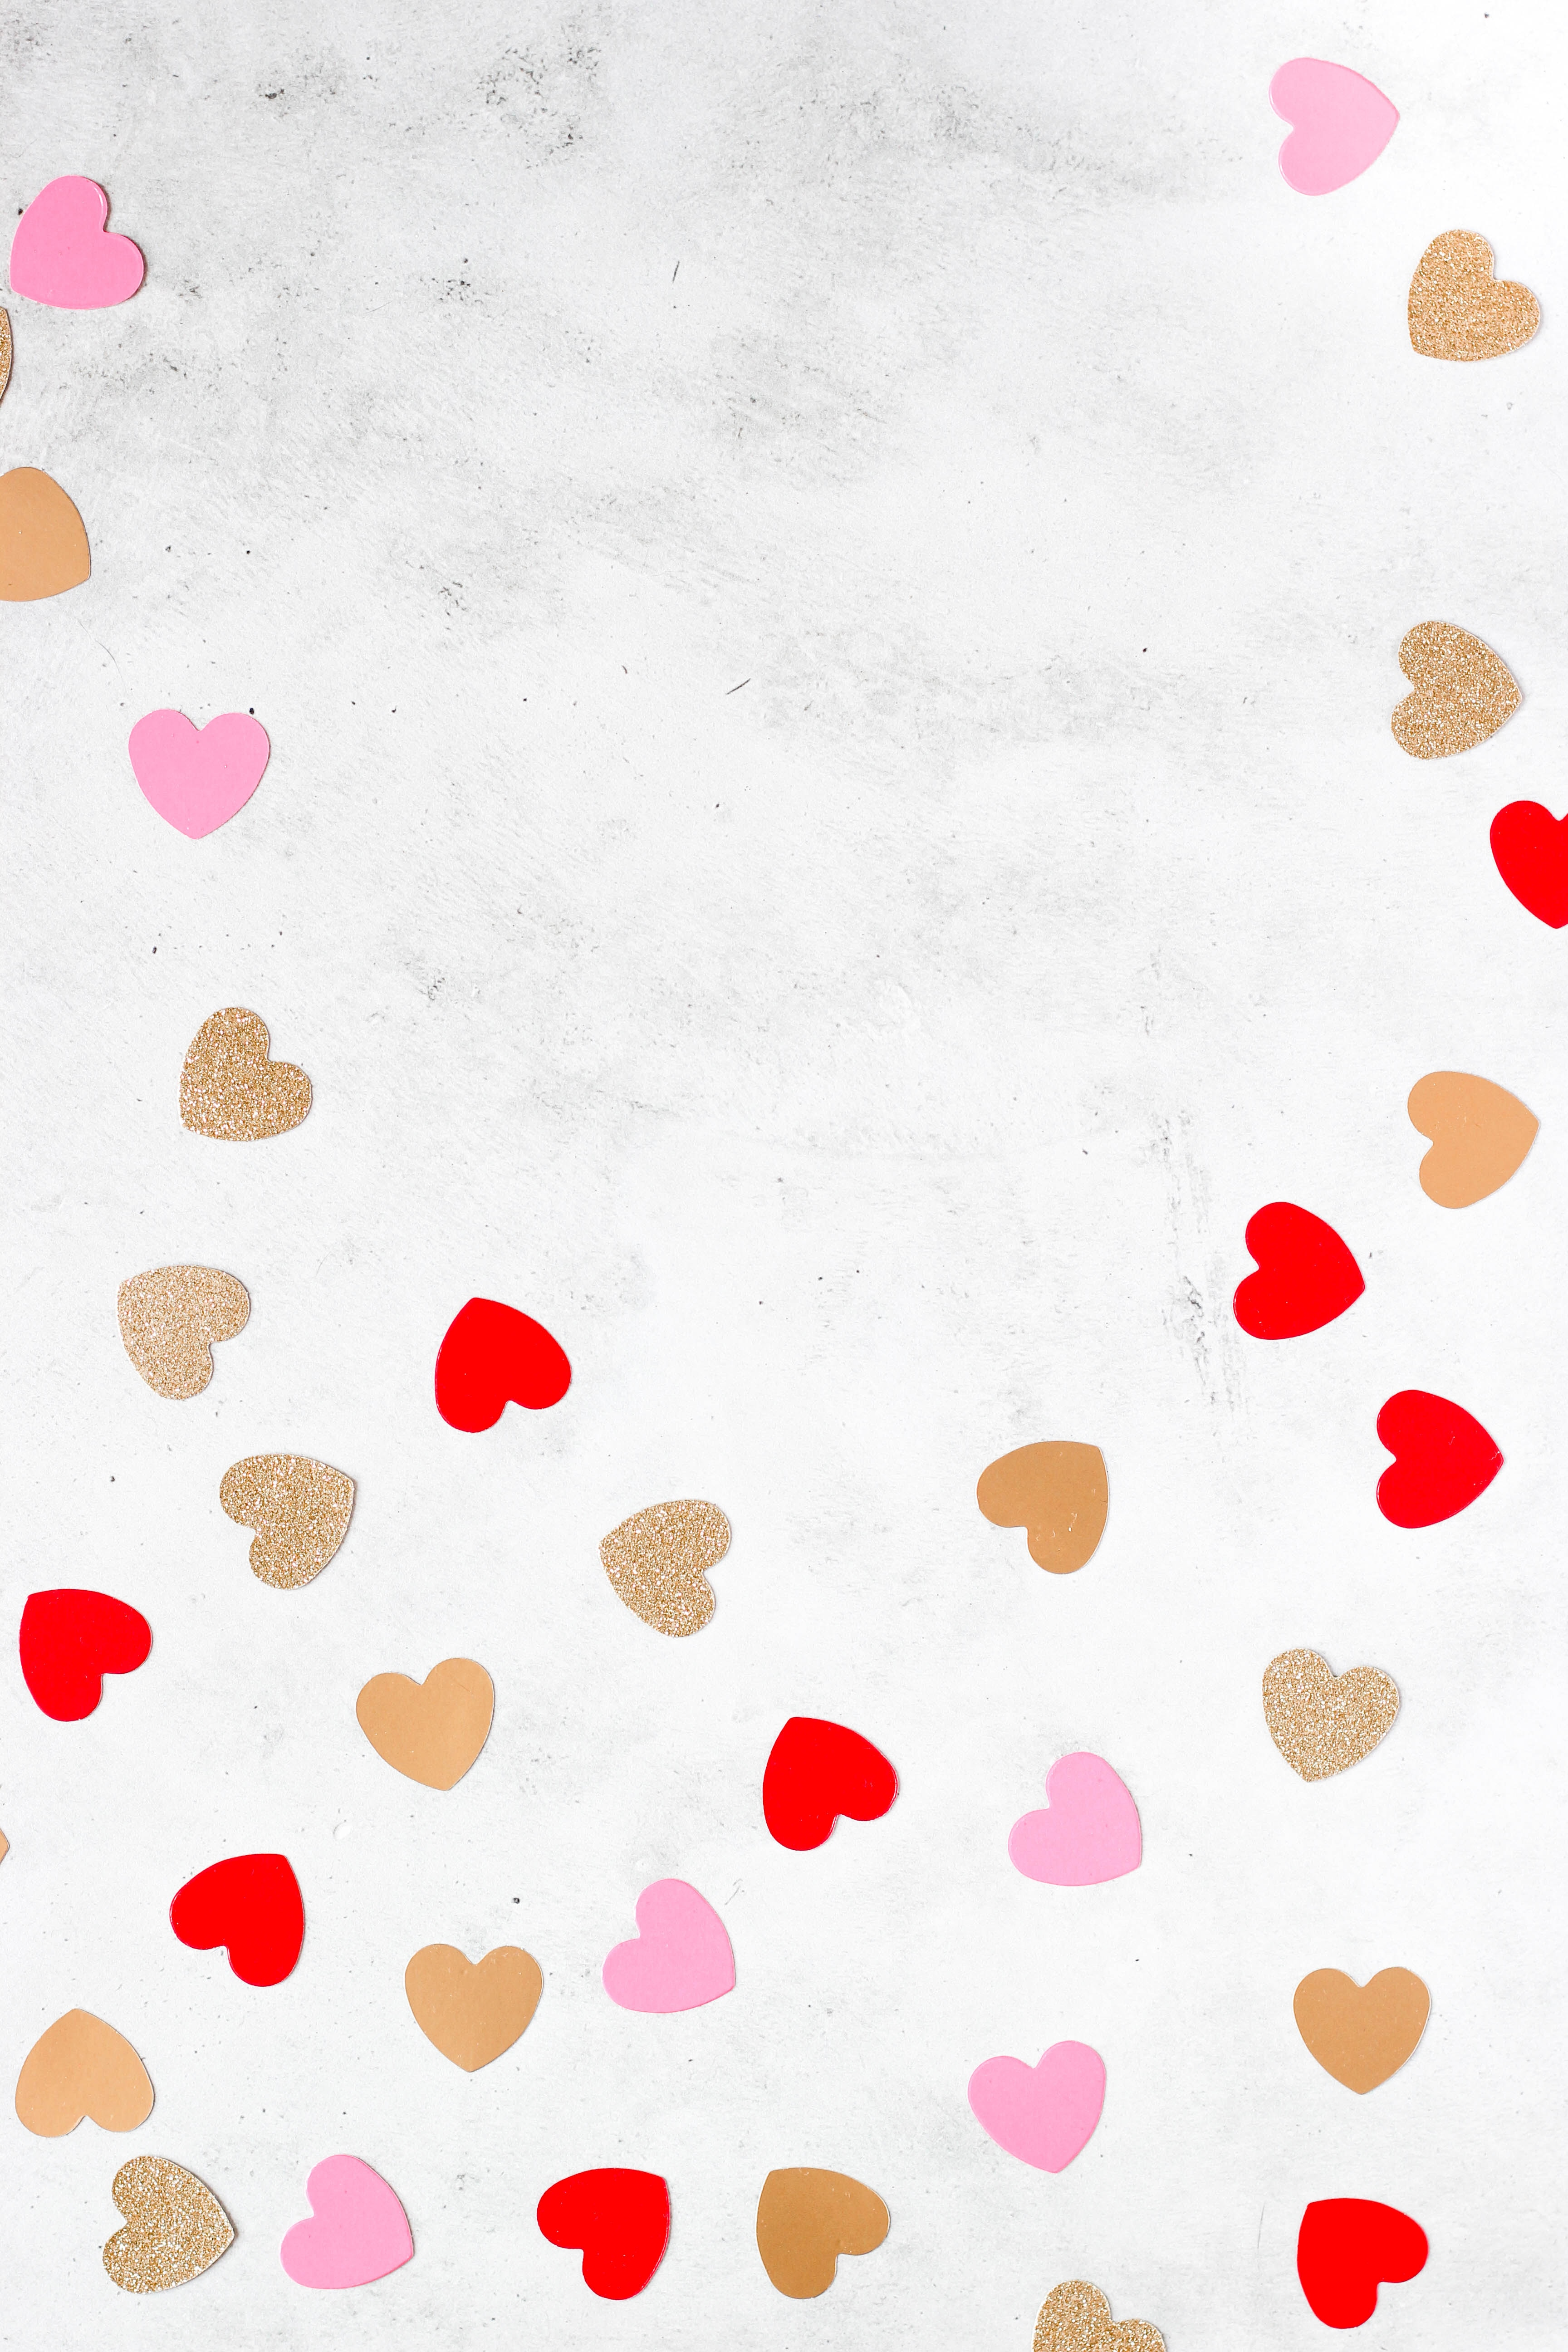 hd love backgrounds 6